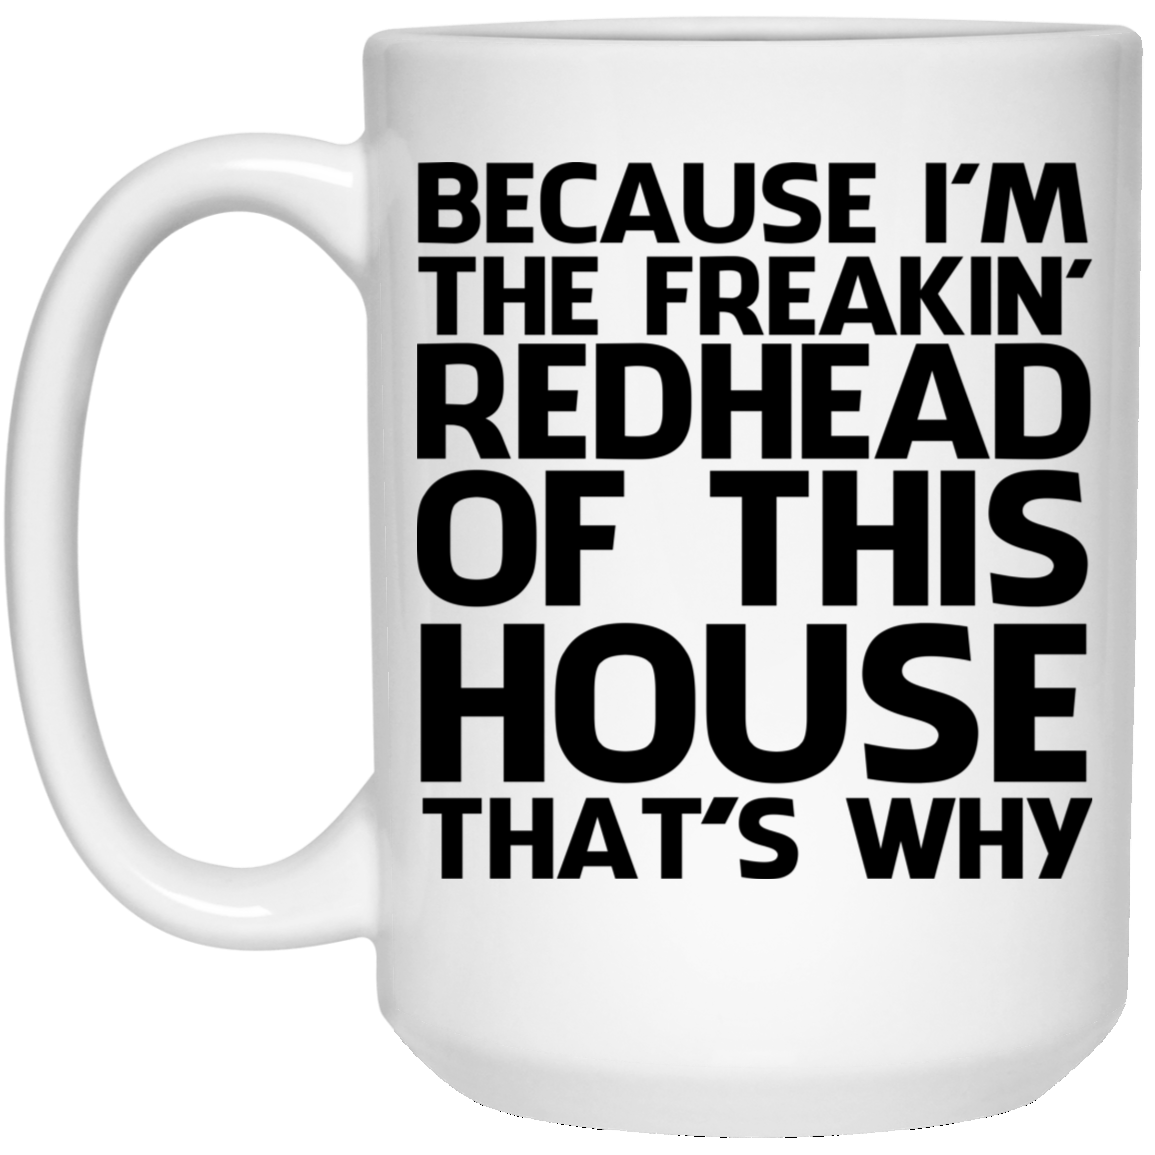 edc98f422 Because I'm freakin' redhead of this house that's why mug